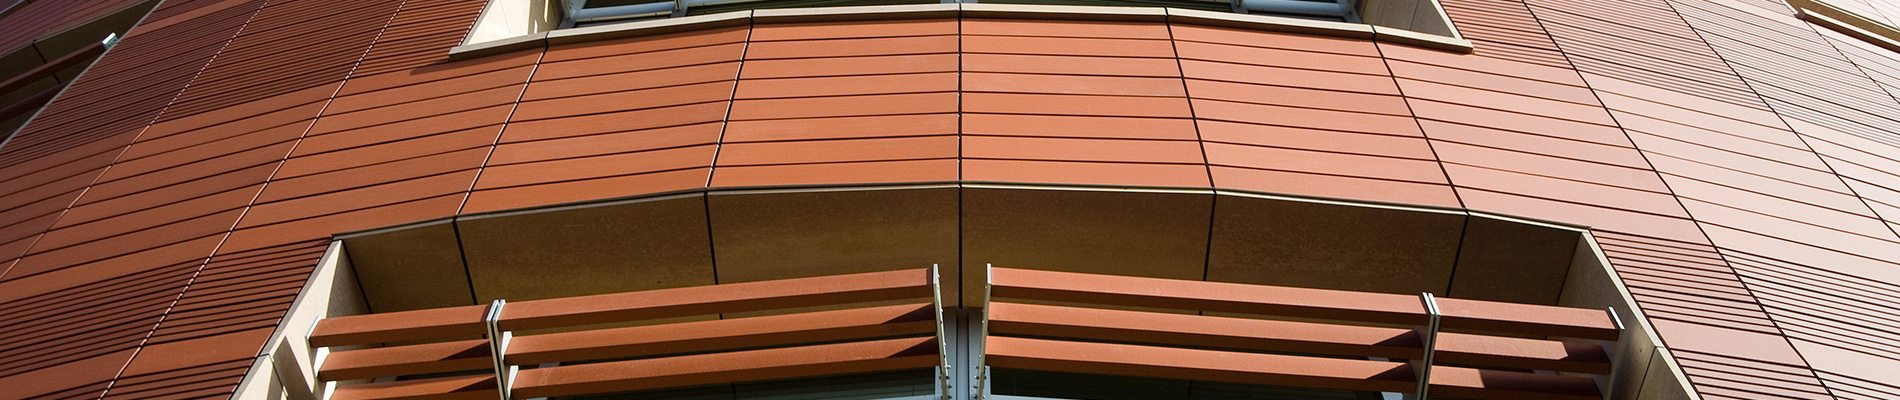 TerraClad architectural terra cotta rainscreen and sunshade systems.